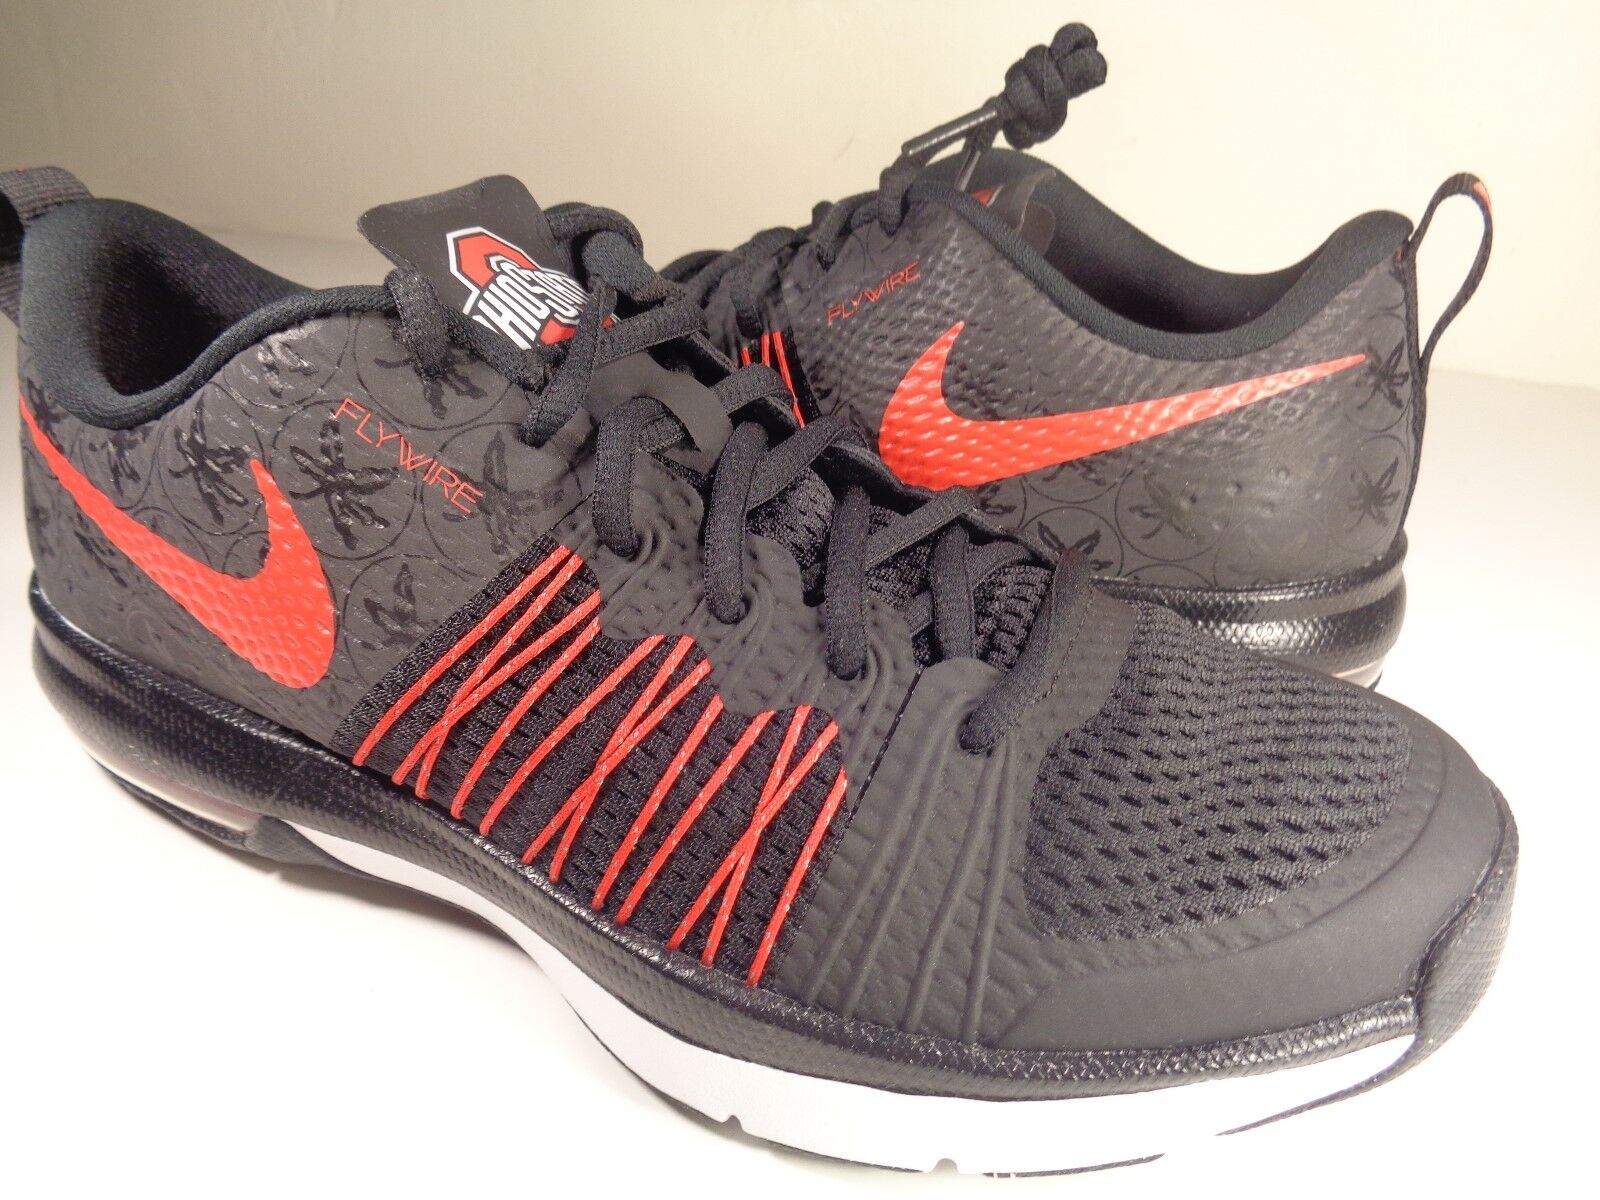 Nike Air Max Effort TR AMP Ohio State Buckeyes SZ 7.5    damen 9  (705367-061)